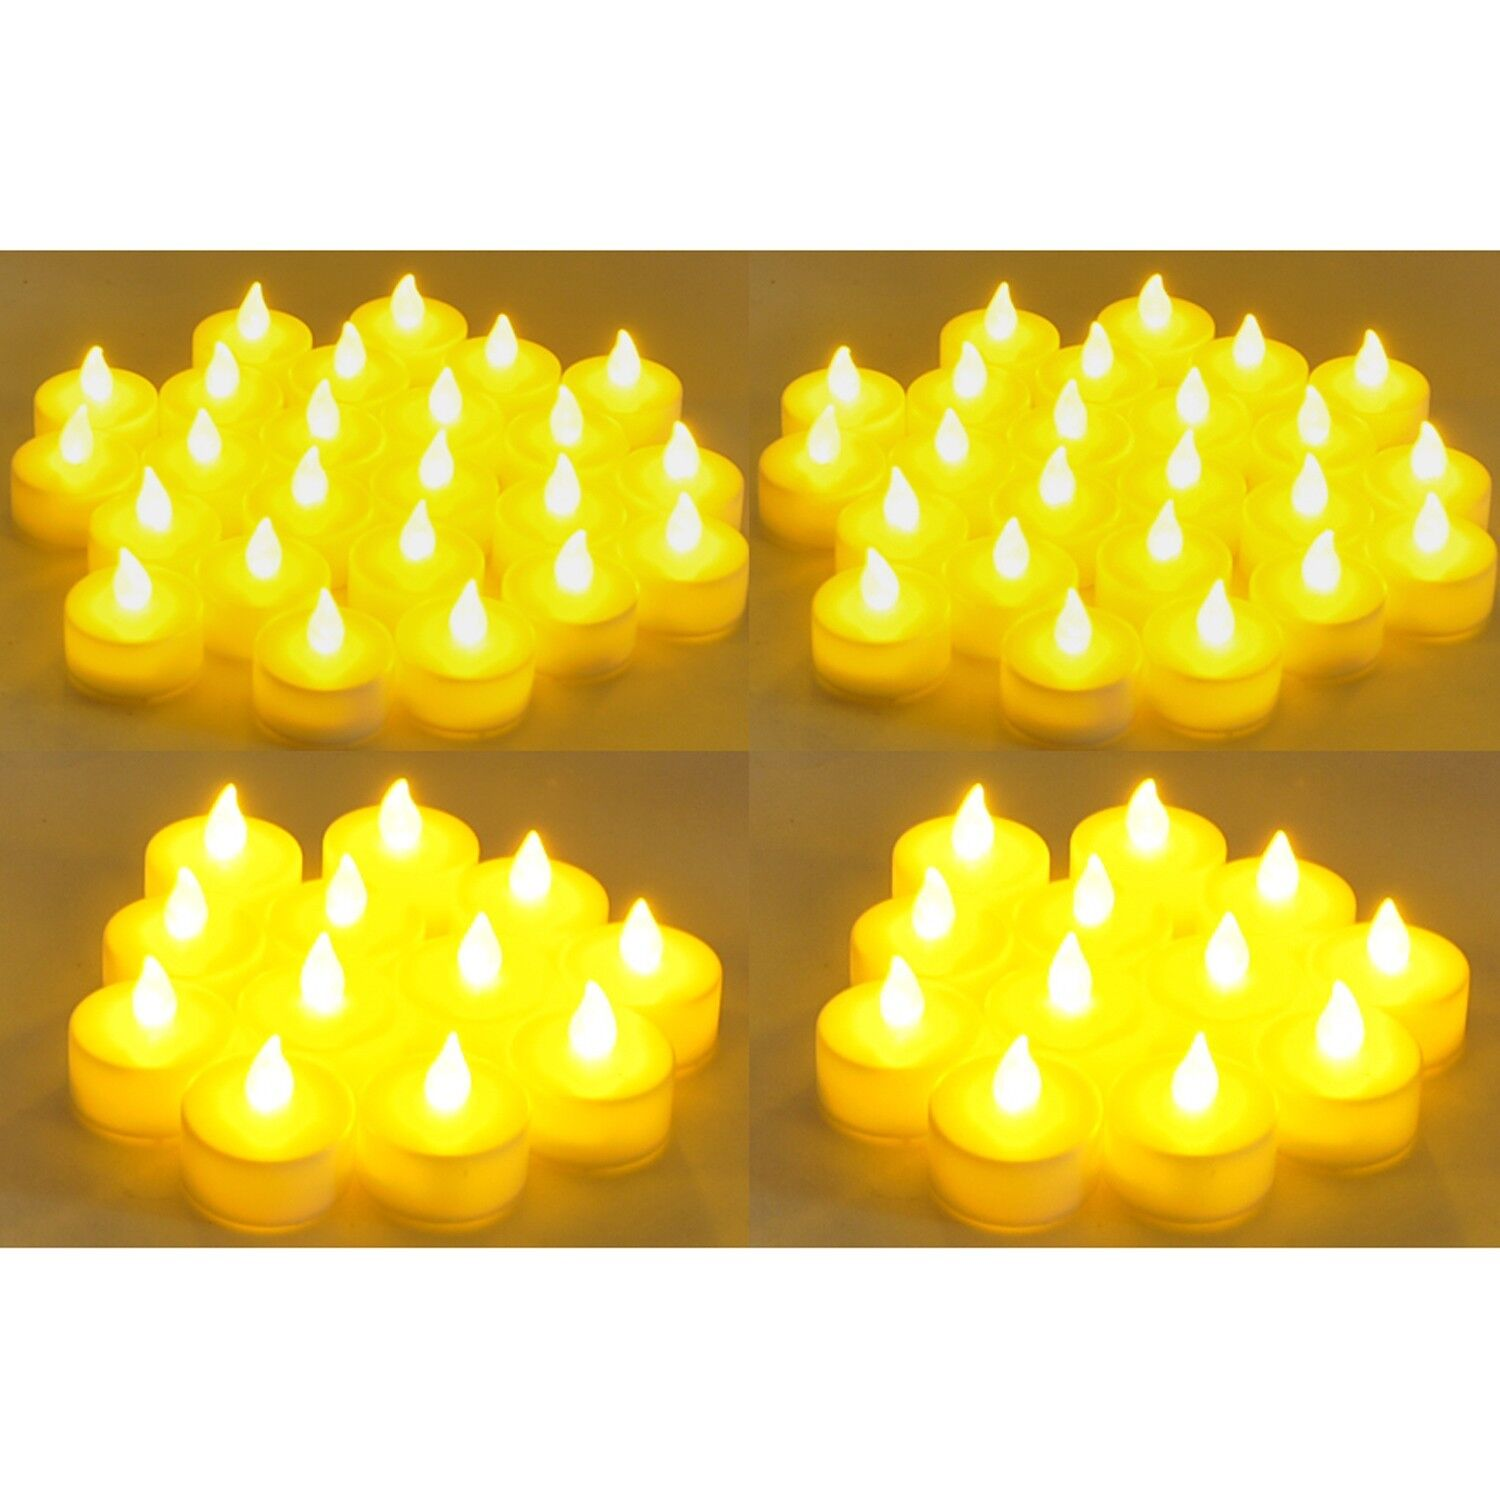 Flameless LED  Tealight  Candles  Tea Light Candle 144pcs Battery Operated